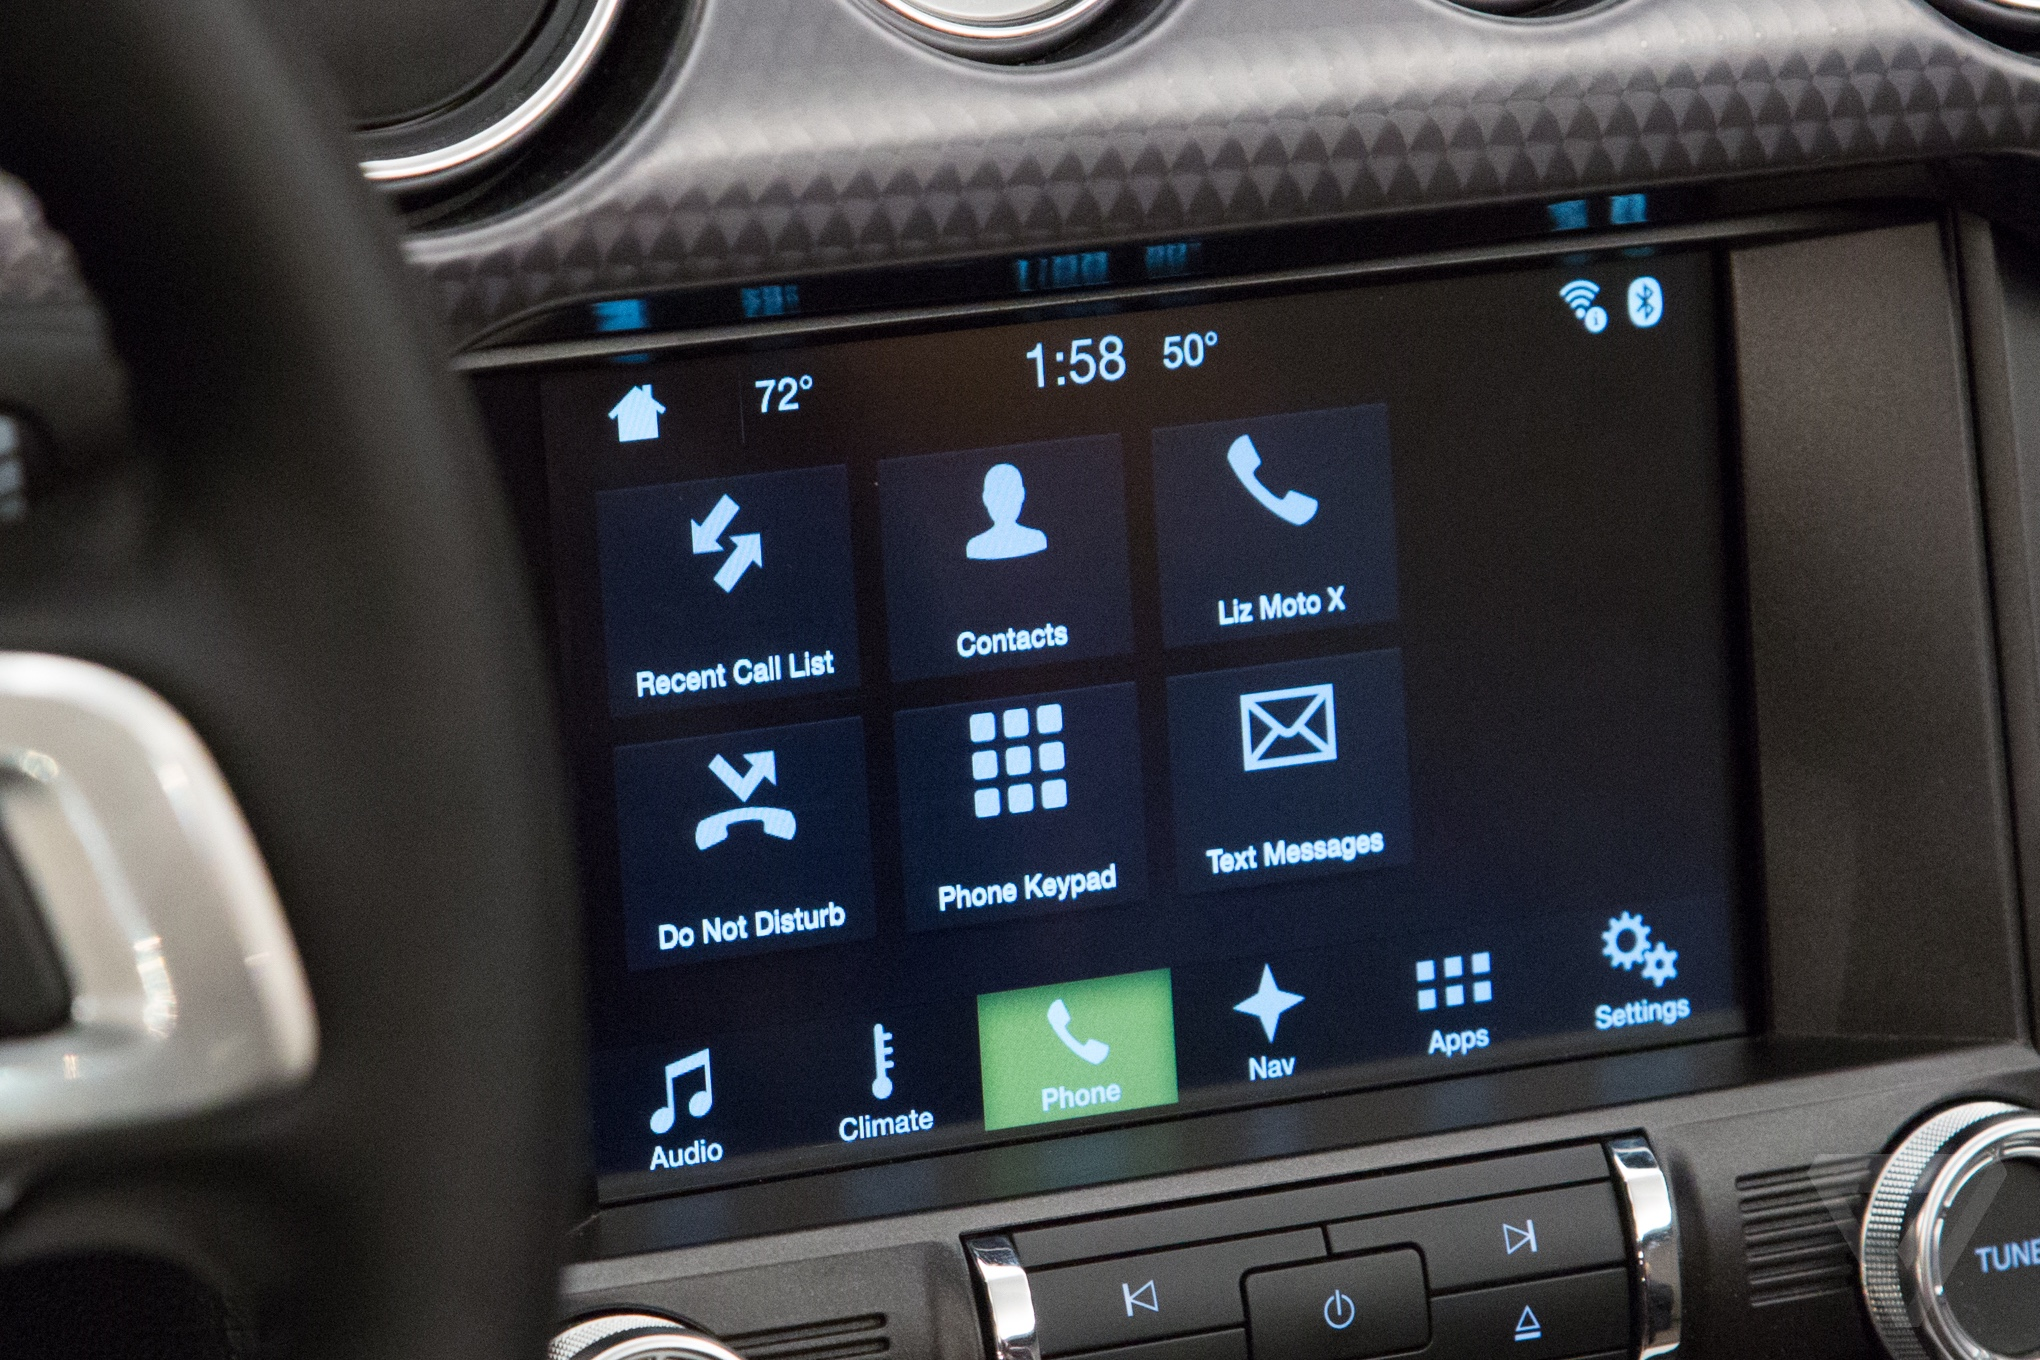 Ford Sync 3 From Microsoft To Qnx And The Change Is Noticeable